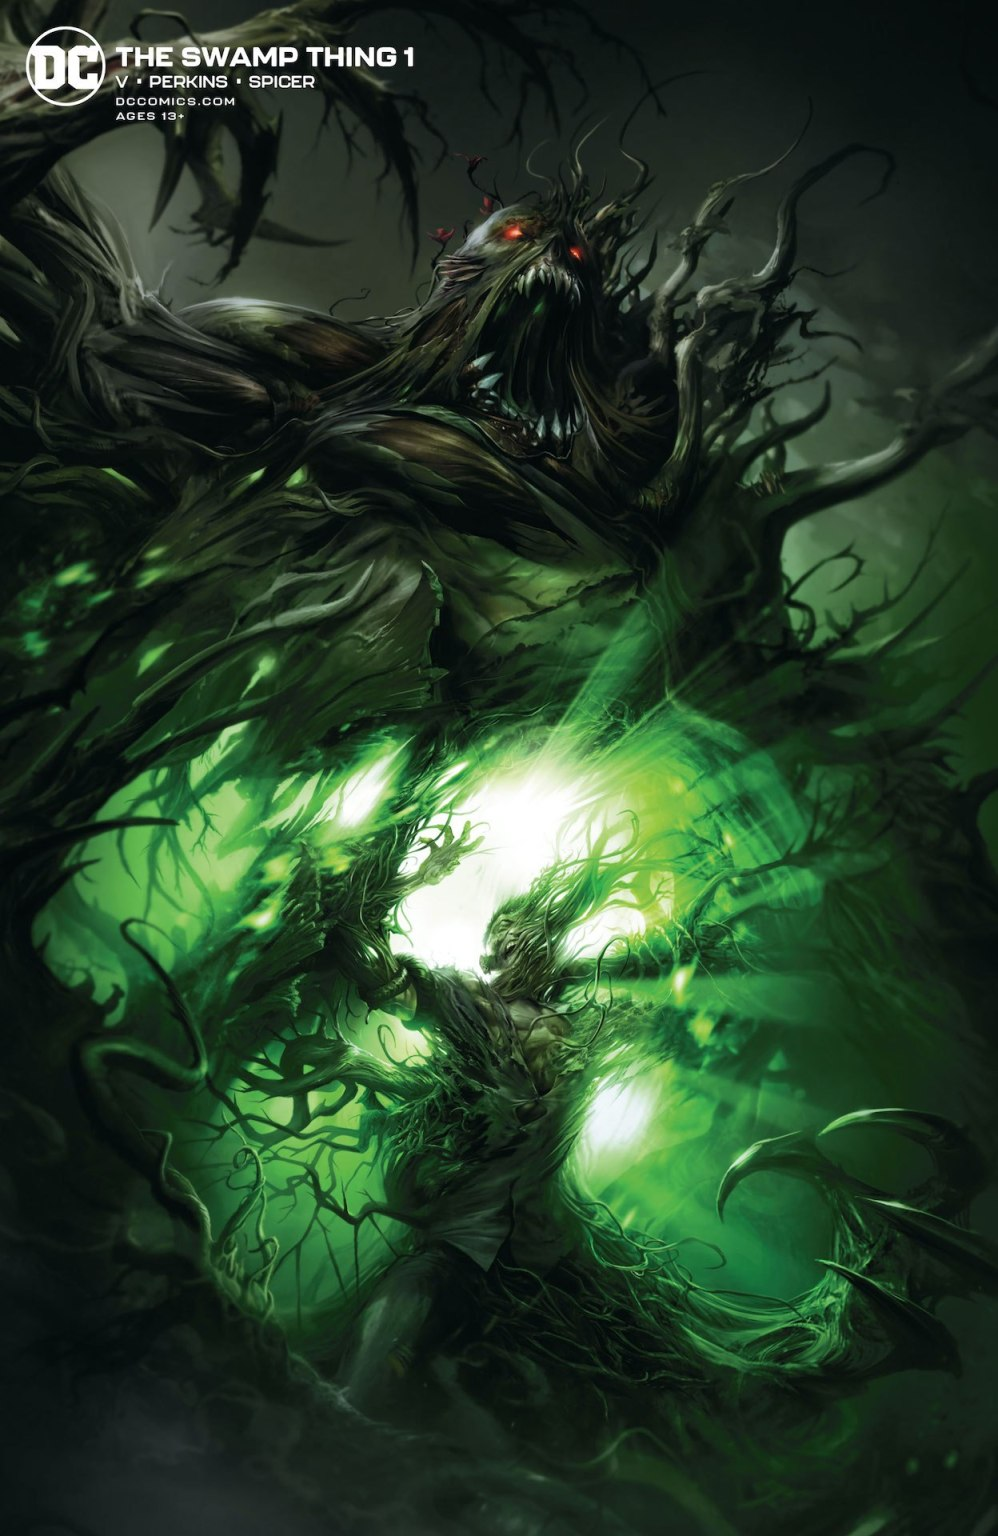 The Swamp Thing #1 preview